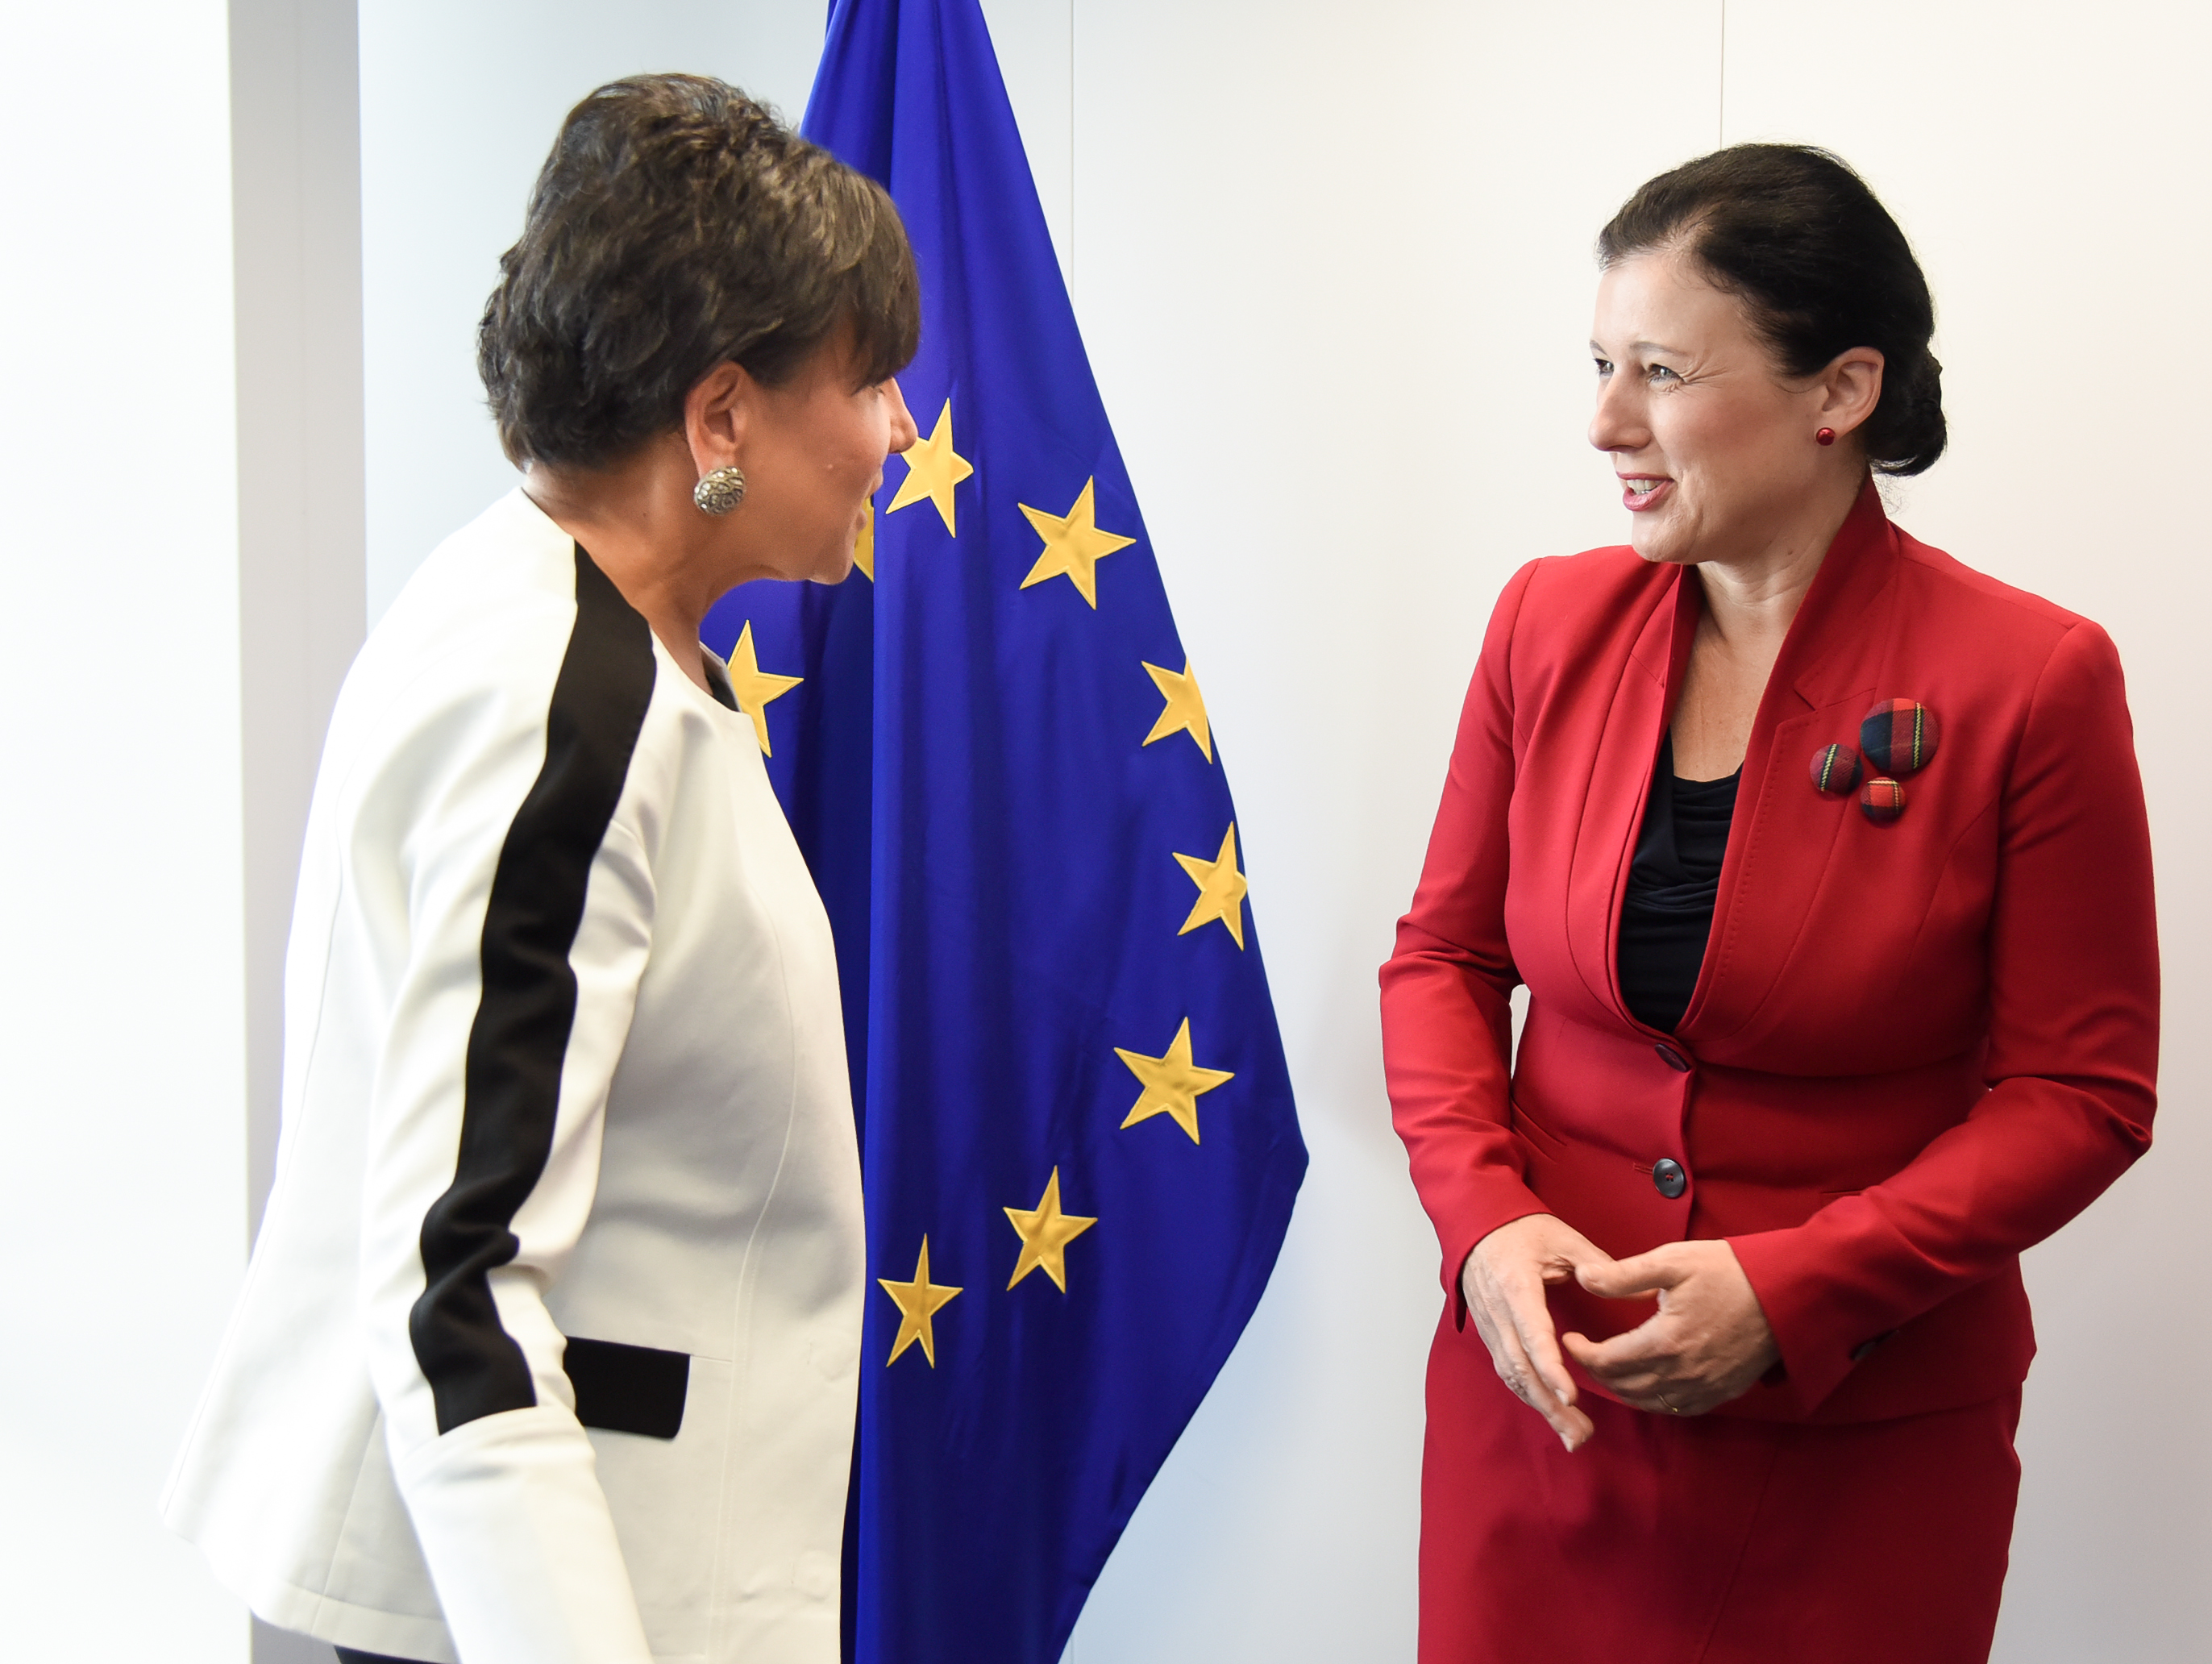 US Secretary of Commerce Penny Pritzker met with EU Justice Commissioner Vera Jourová this summer amid negotiations over a new EU-US datasharing agreement